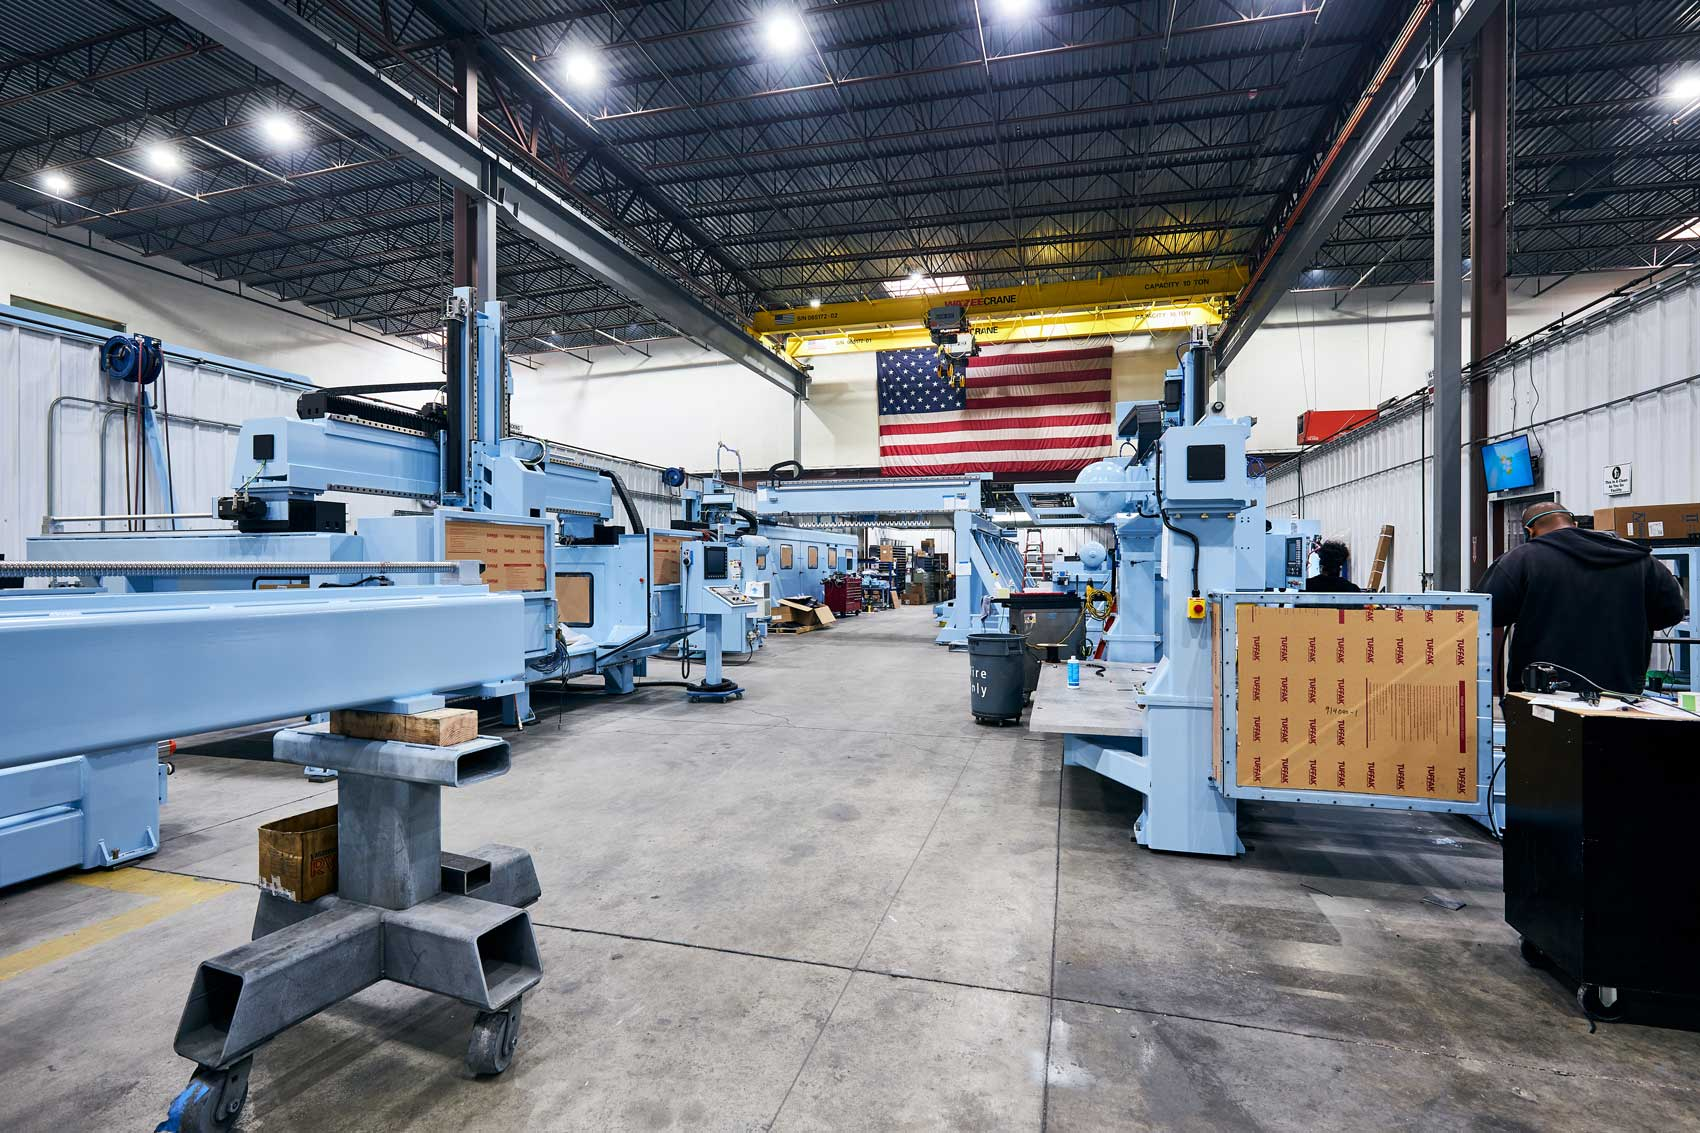 Diversified Machine Systems' Factory floor with blue machines and large American flag